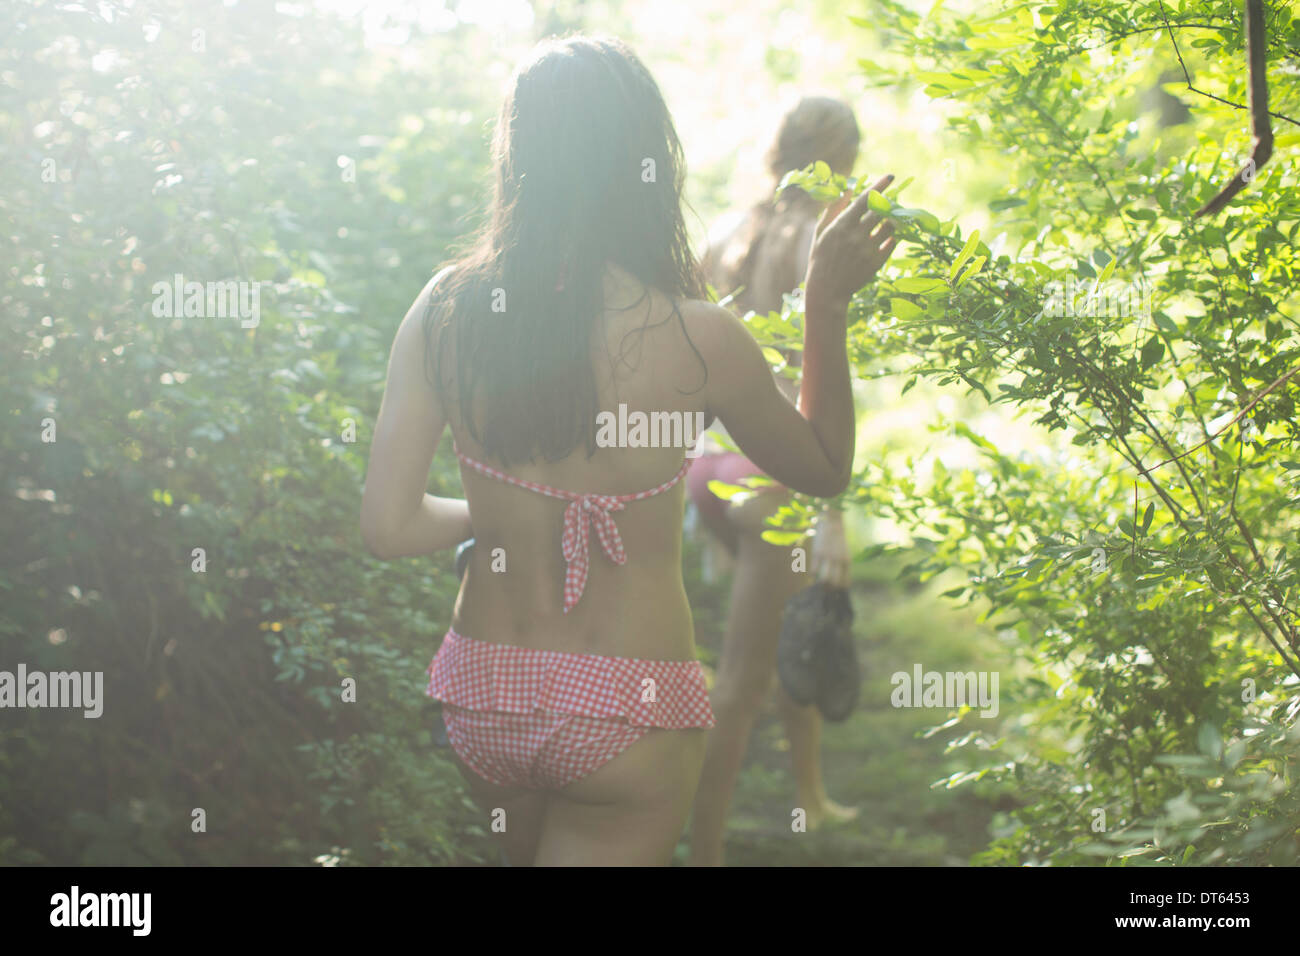 Friends walking on forest trail - Stock Image